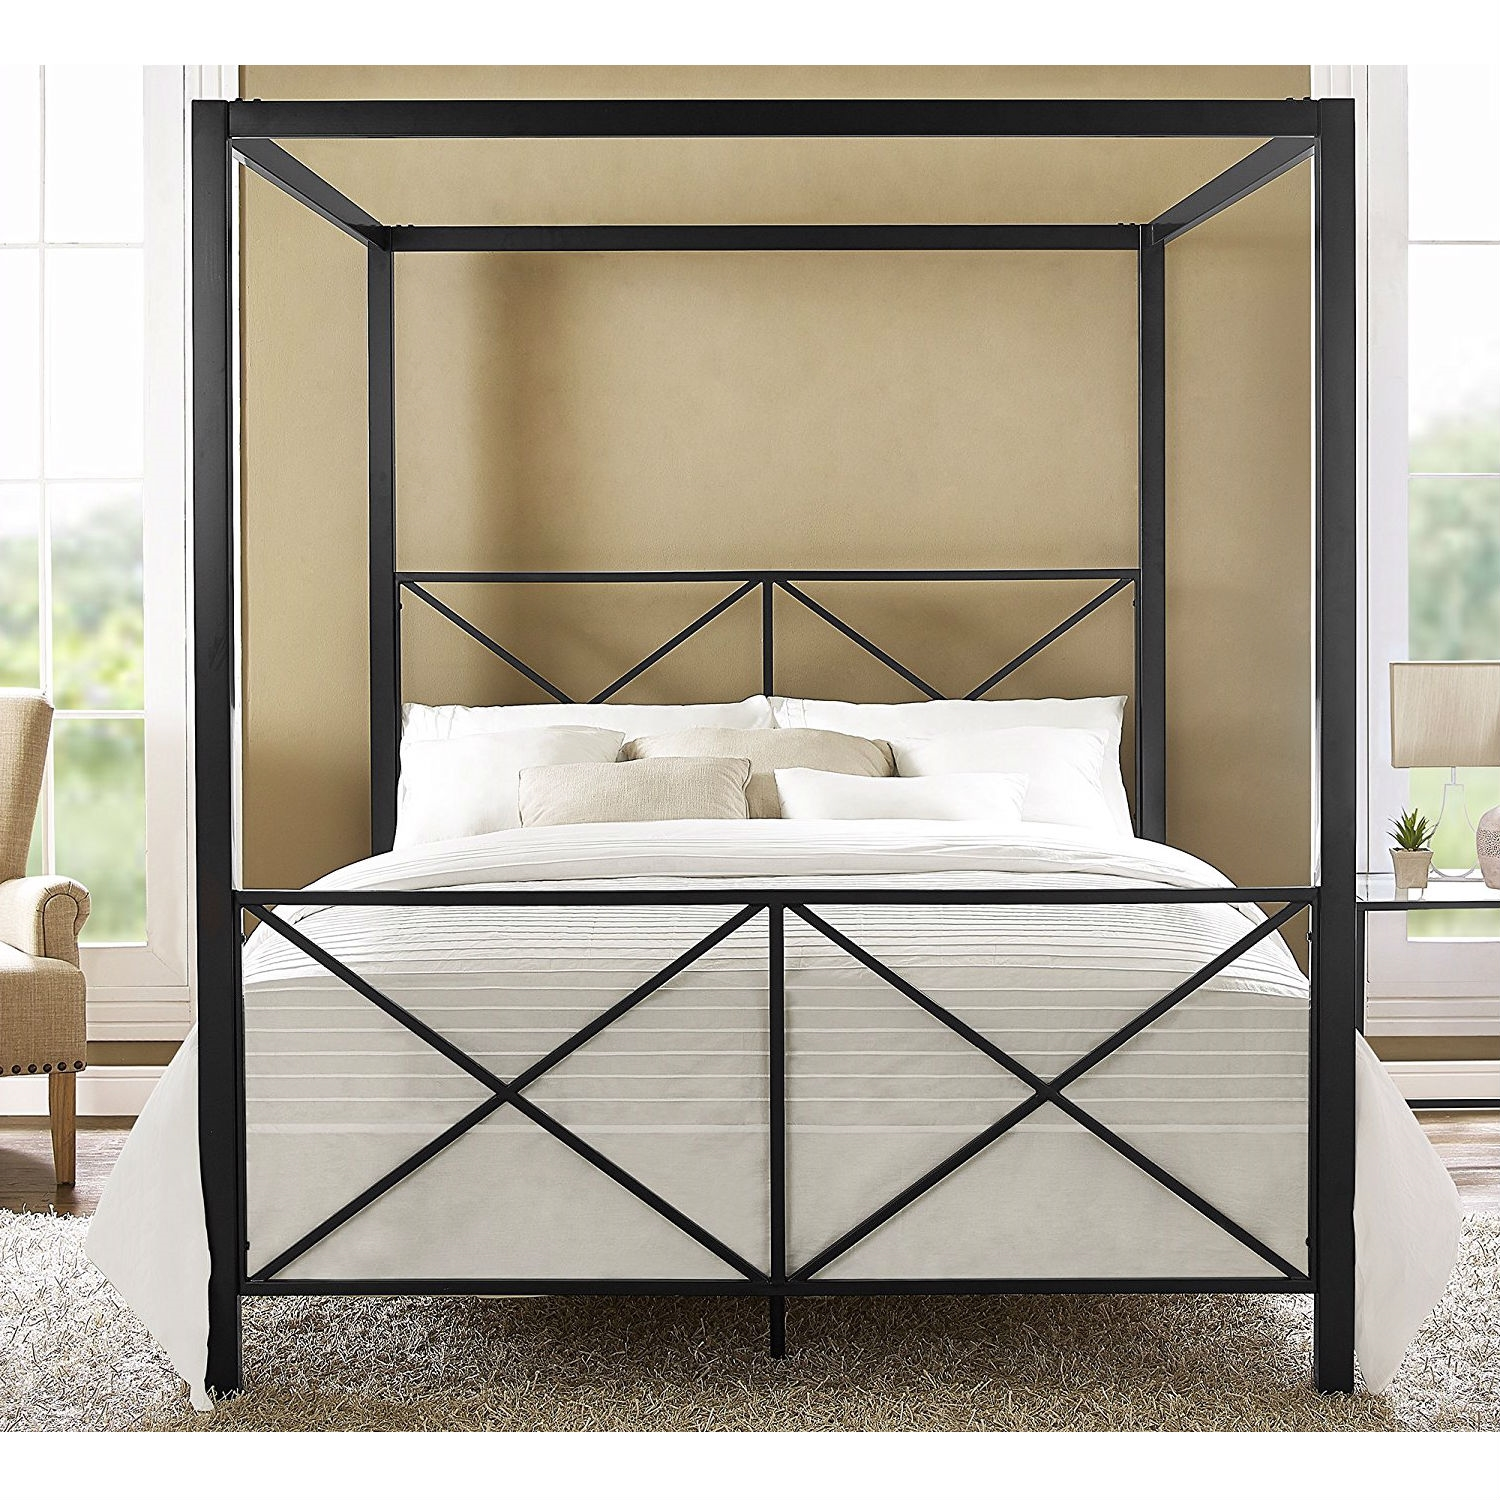 Queen Size 4 Post Metal Canopy Bed Frame In Black